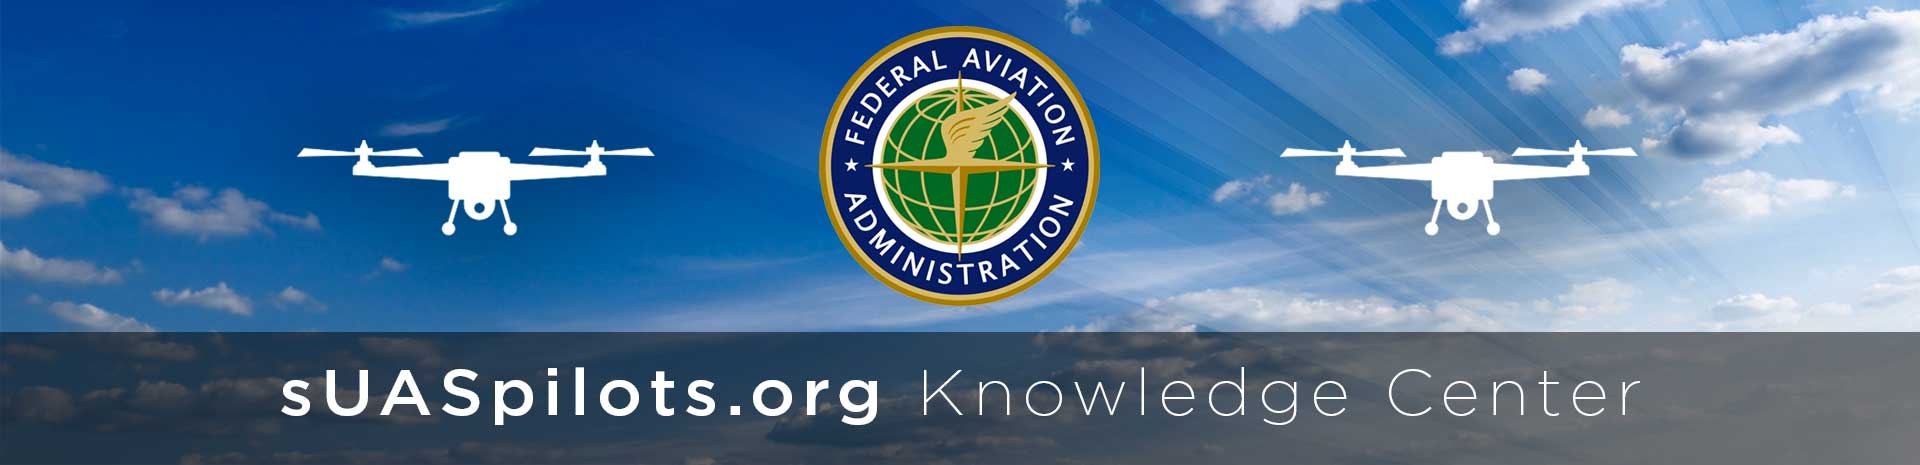 Knowledge center suas pilots small unmanned aircraft systems airman certification standards xflitez Choice Image